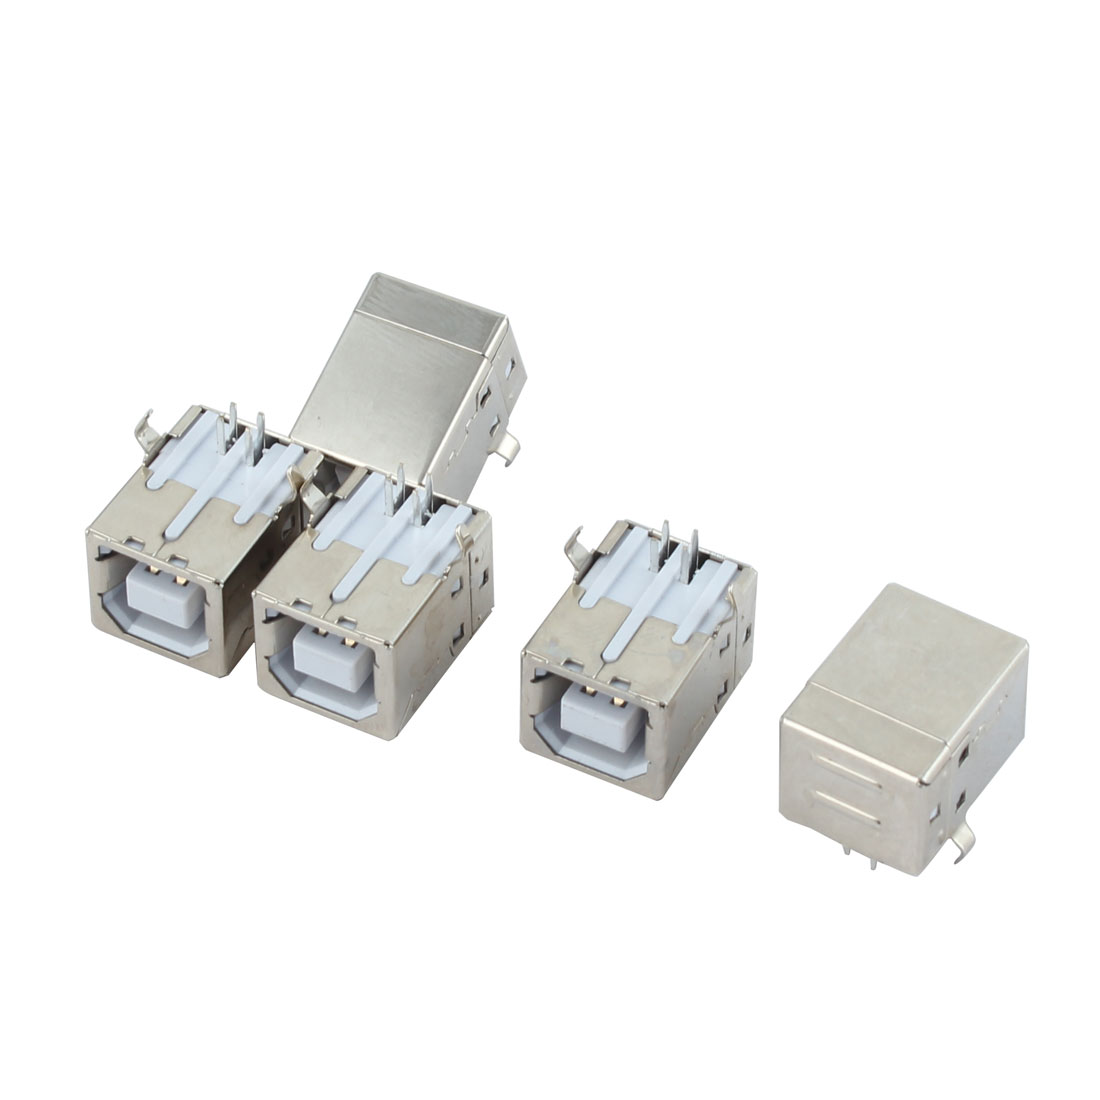 5pcs Right Angle 4 Pins USB Type B PCB Mount Printer Scanner Female Connector Jack Socket